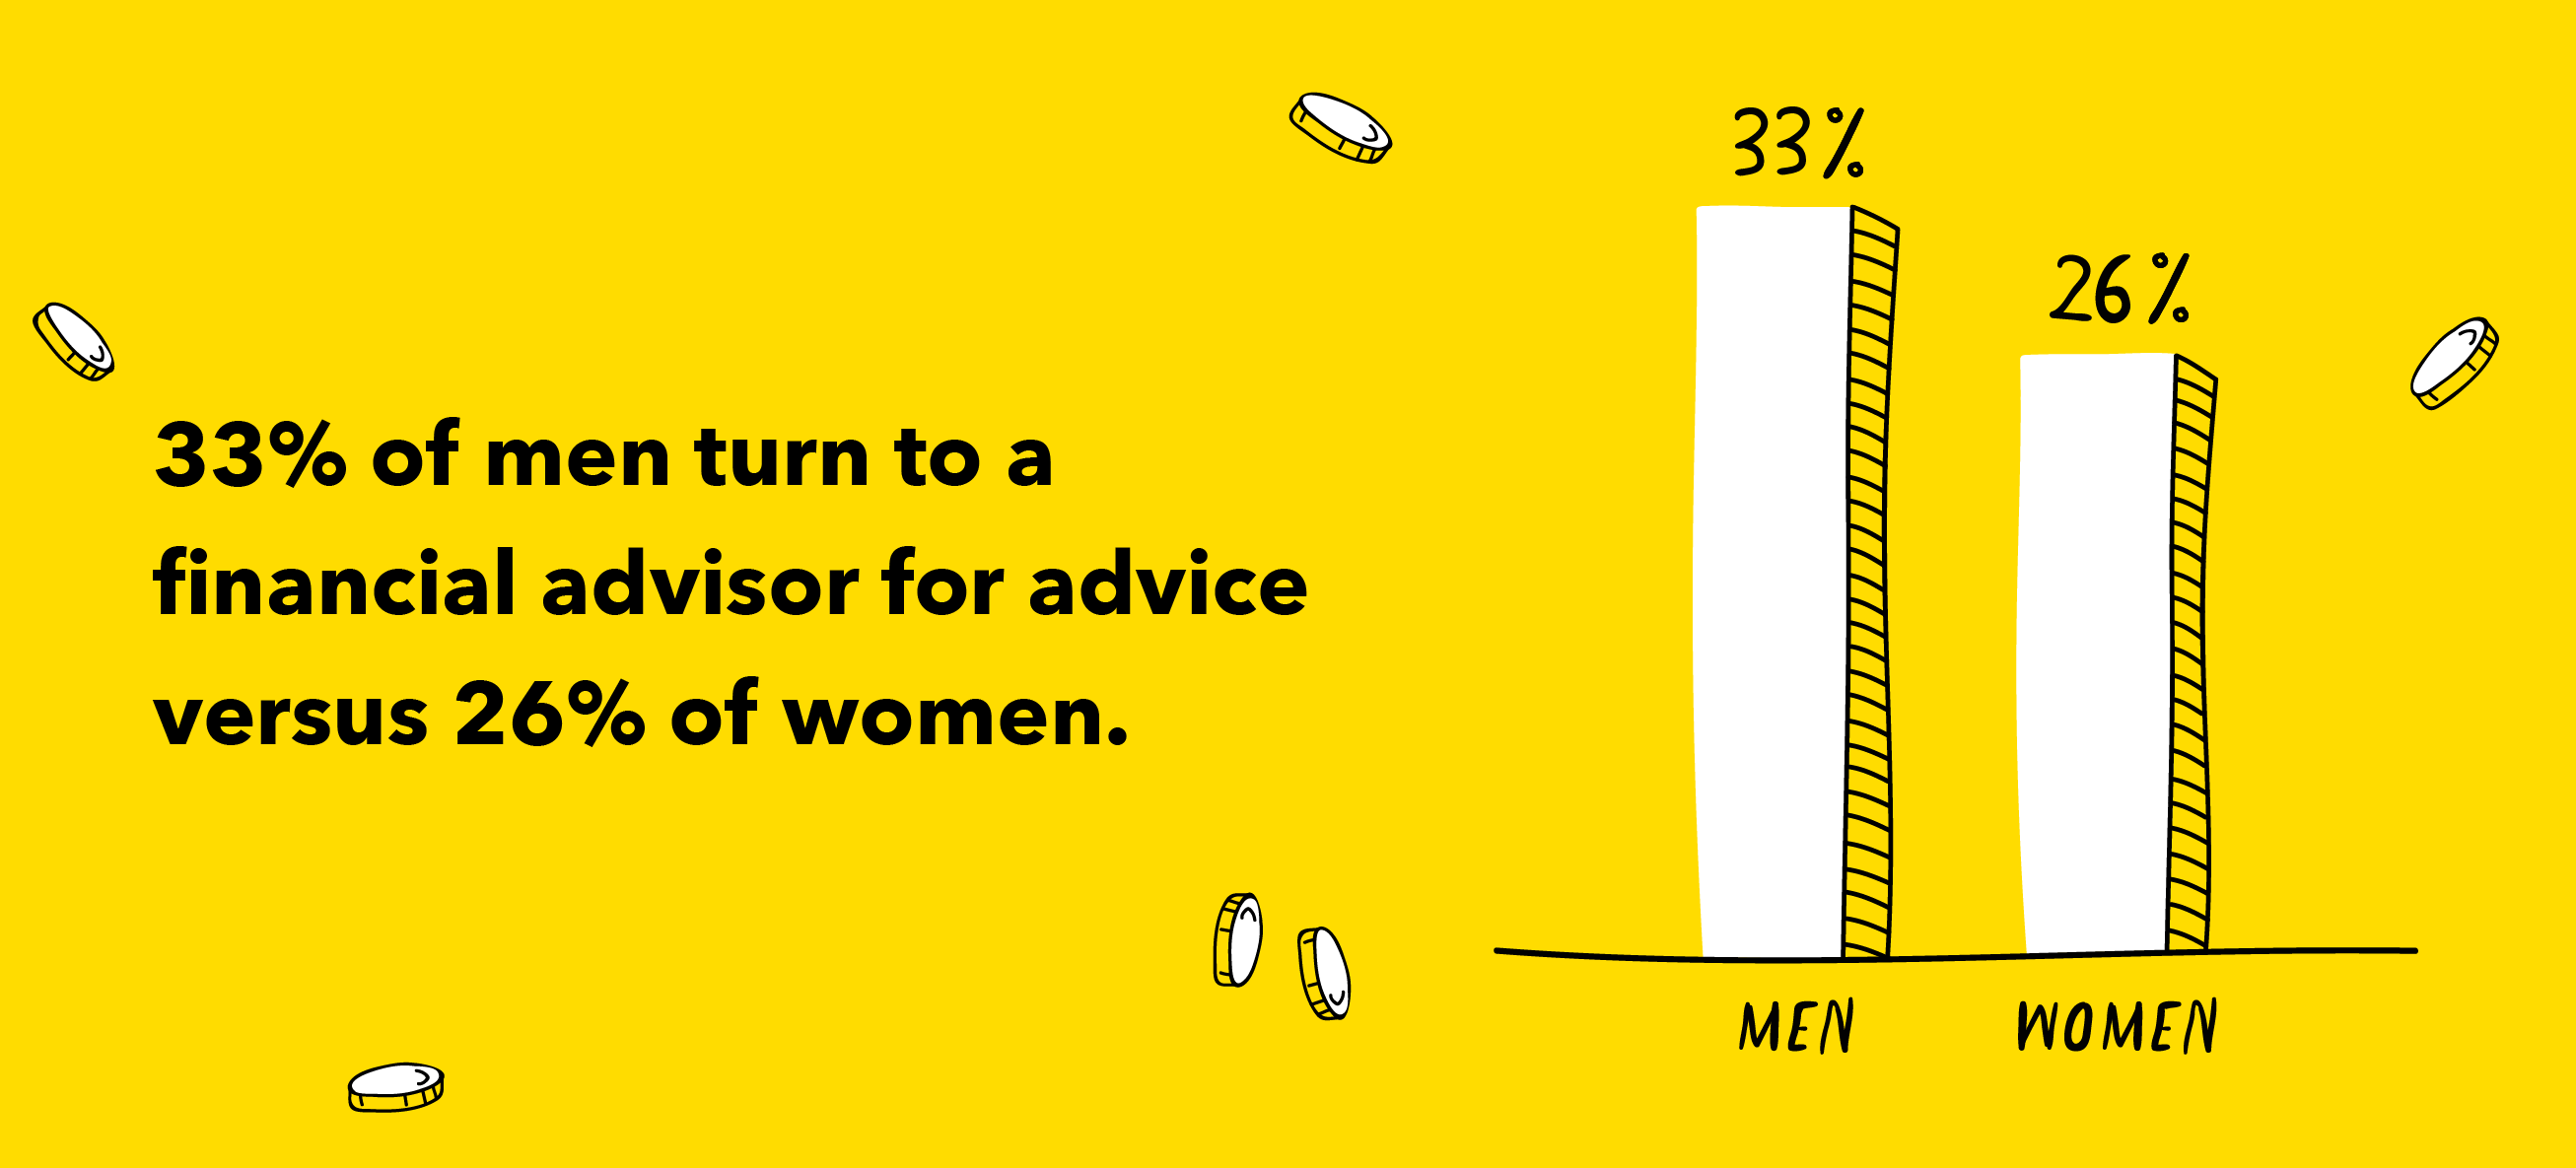 illustrated graphic showing men trust a financial advisor more than women